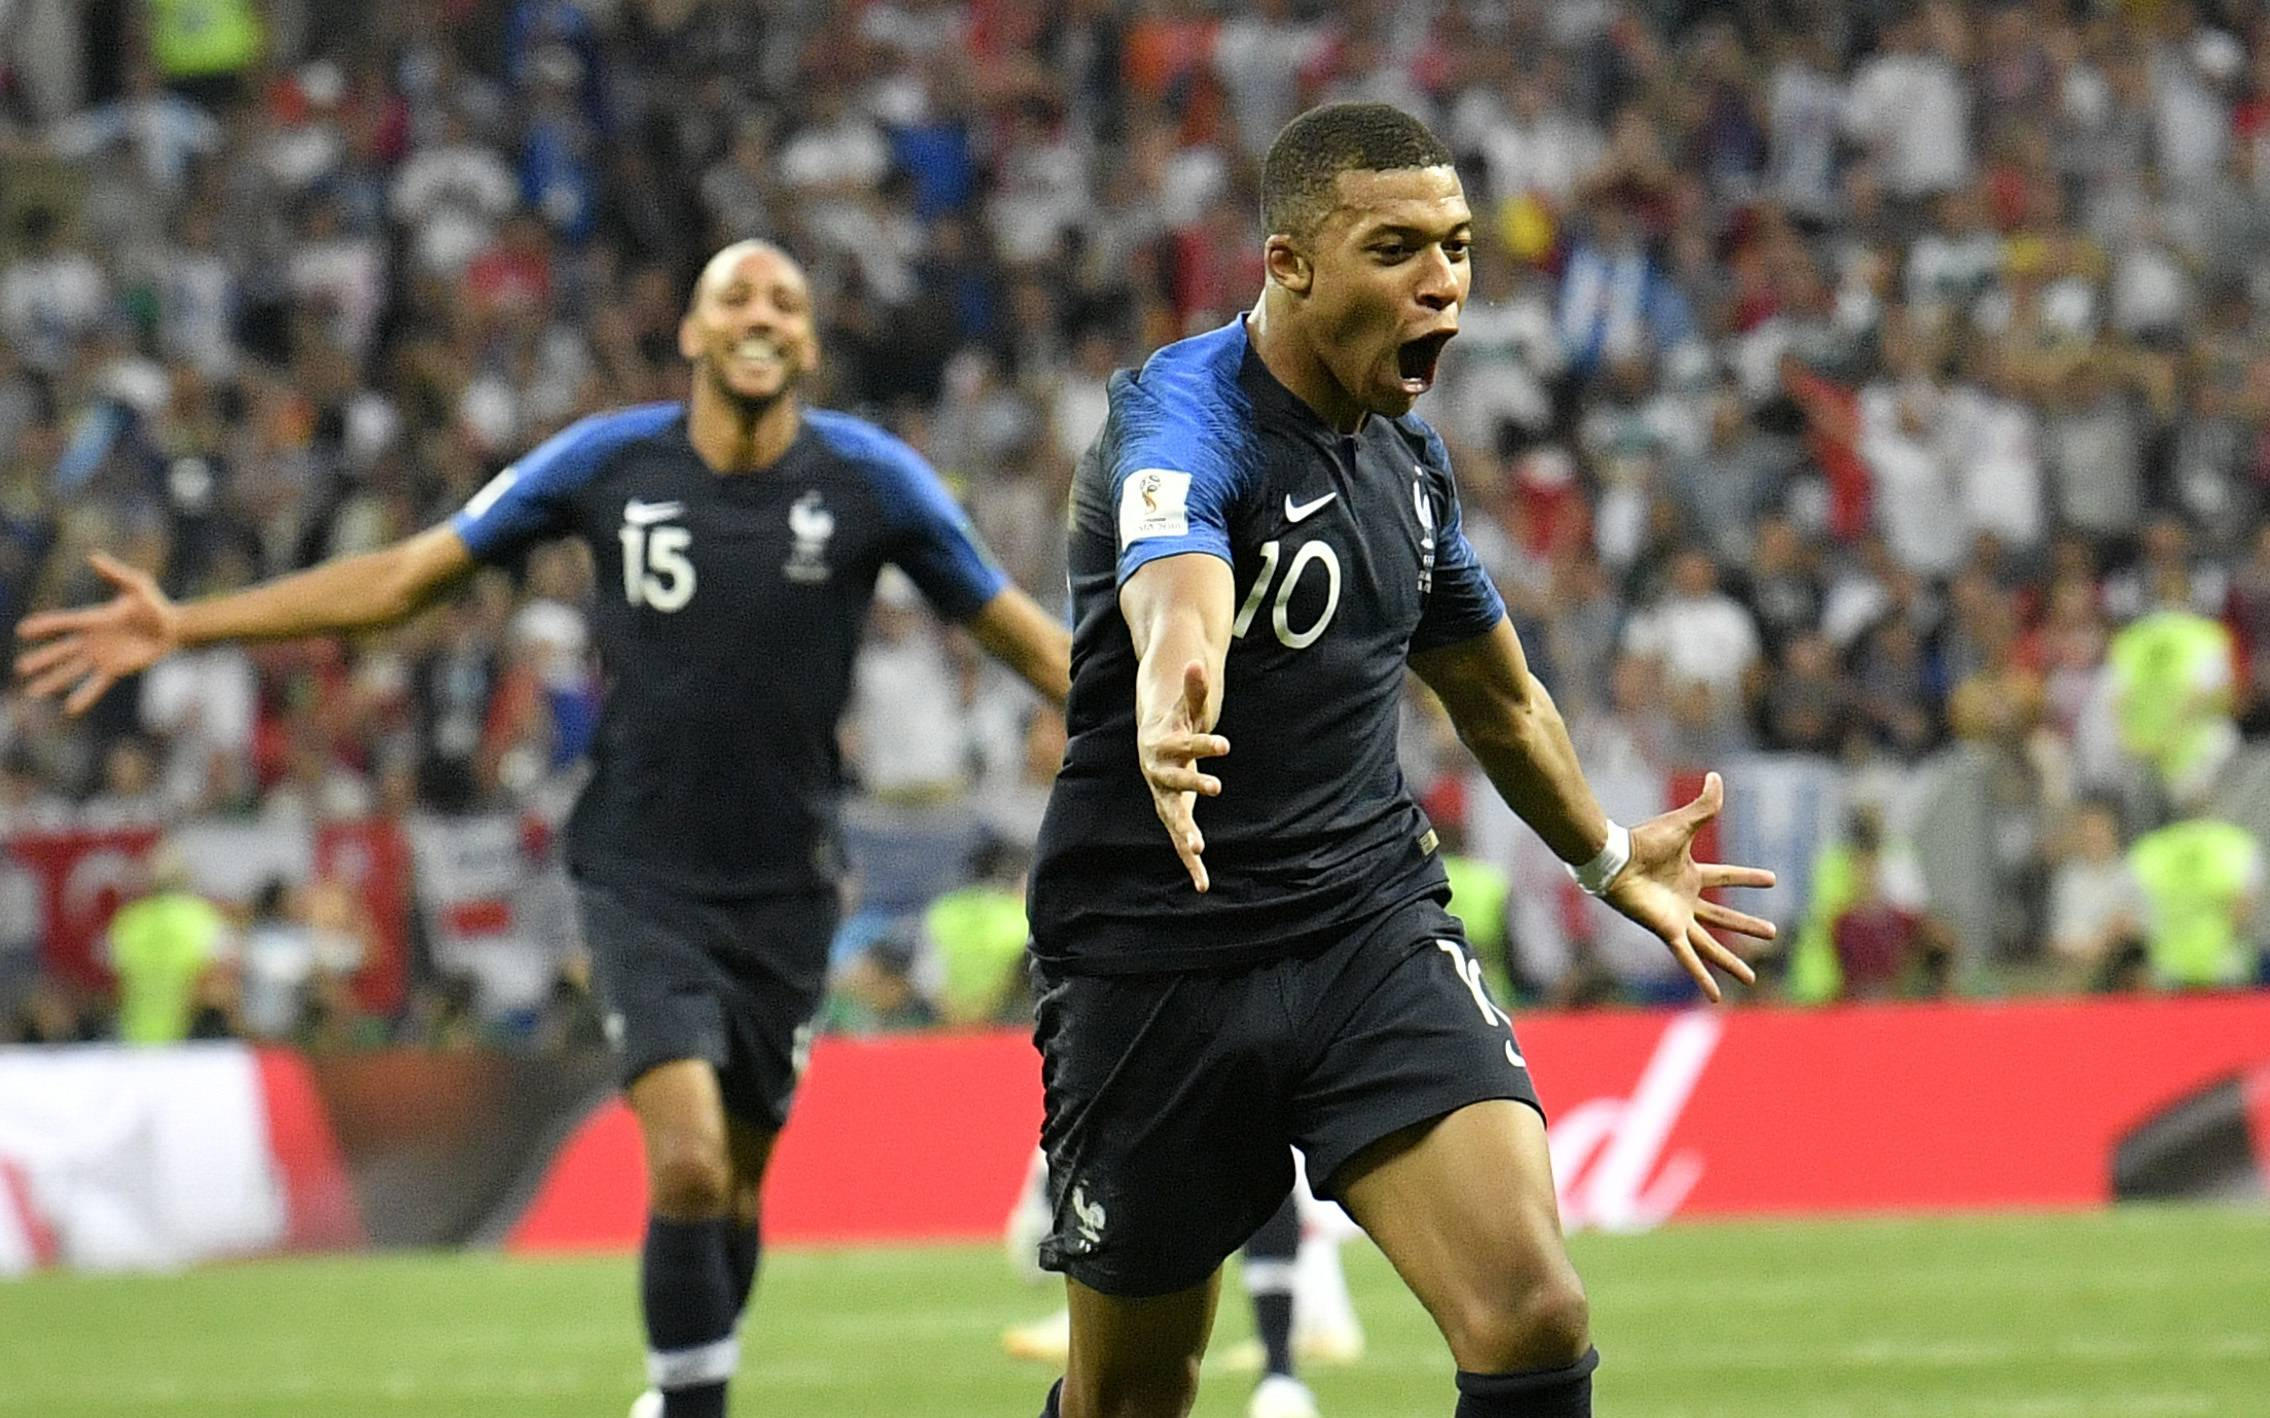 France's Kylian Mbappe, front, celebrates after scoring his side's fourth goal during the final match between France and Croatia at the 2018 soccer World Cup in the Luzhniki Stadium in Moscow, Russia, Sunday, July 15, 2018. (AP Photo/Martin Meissner)